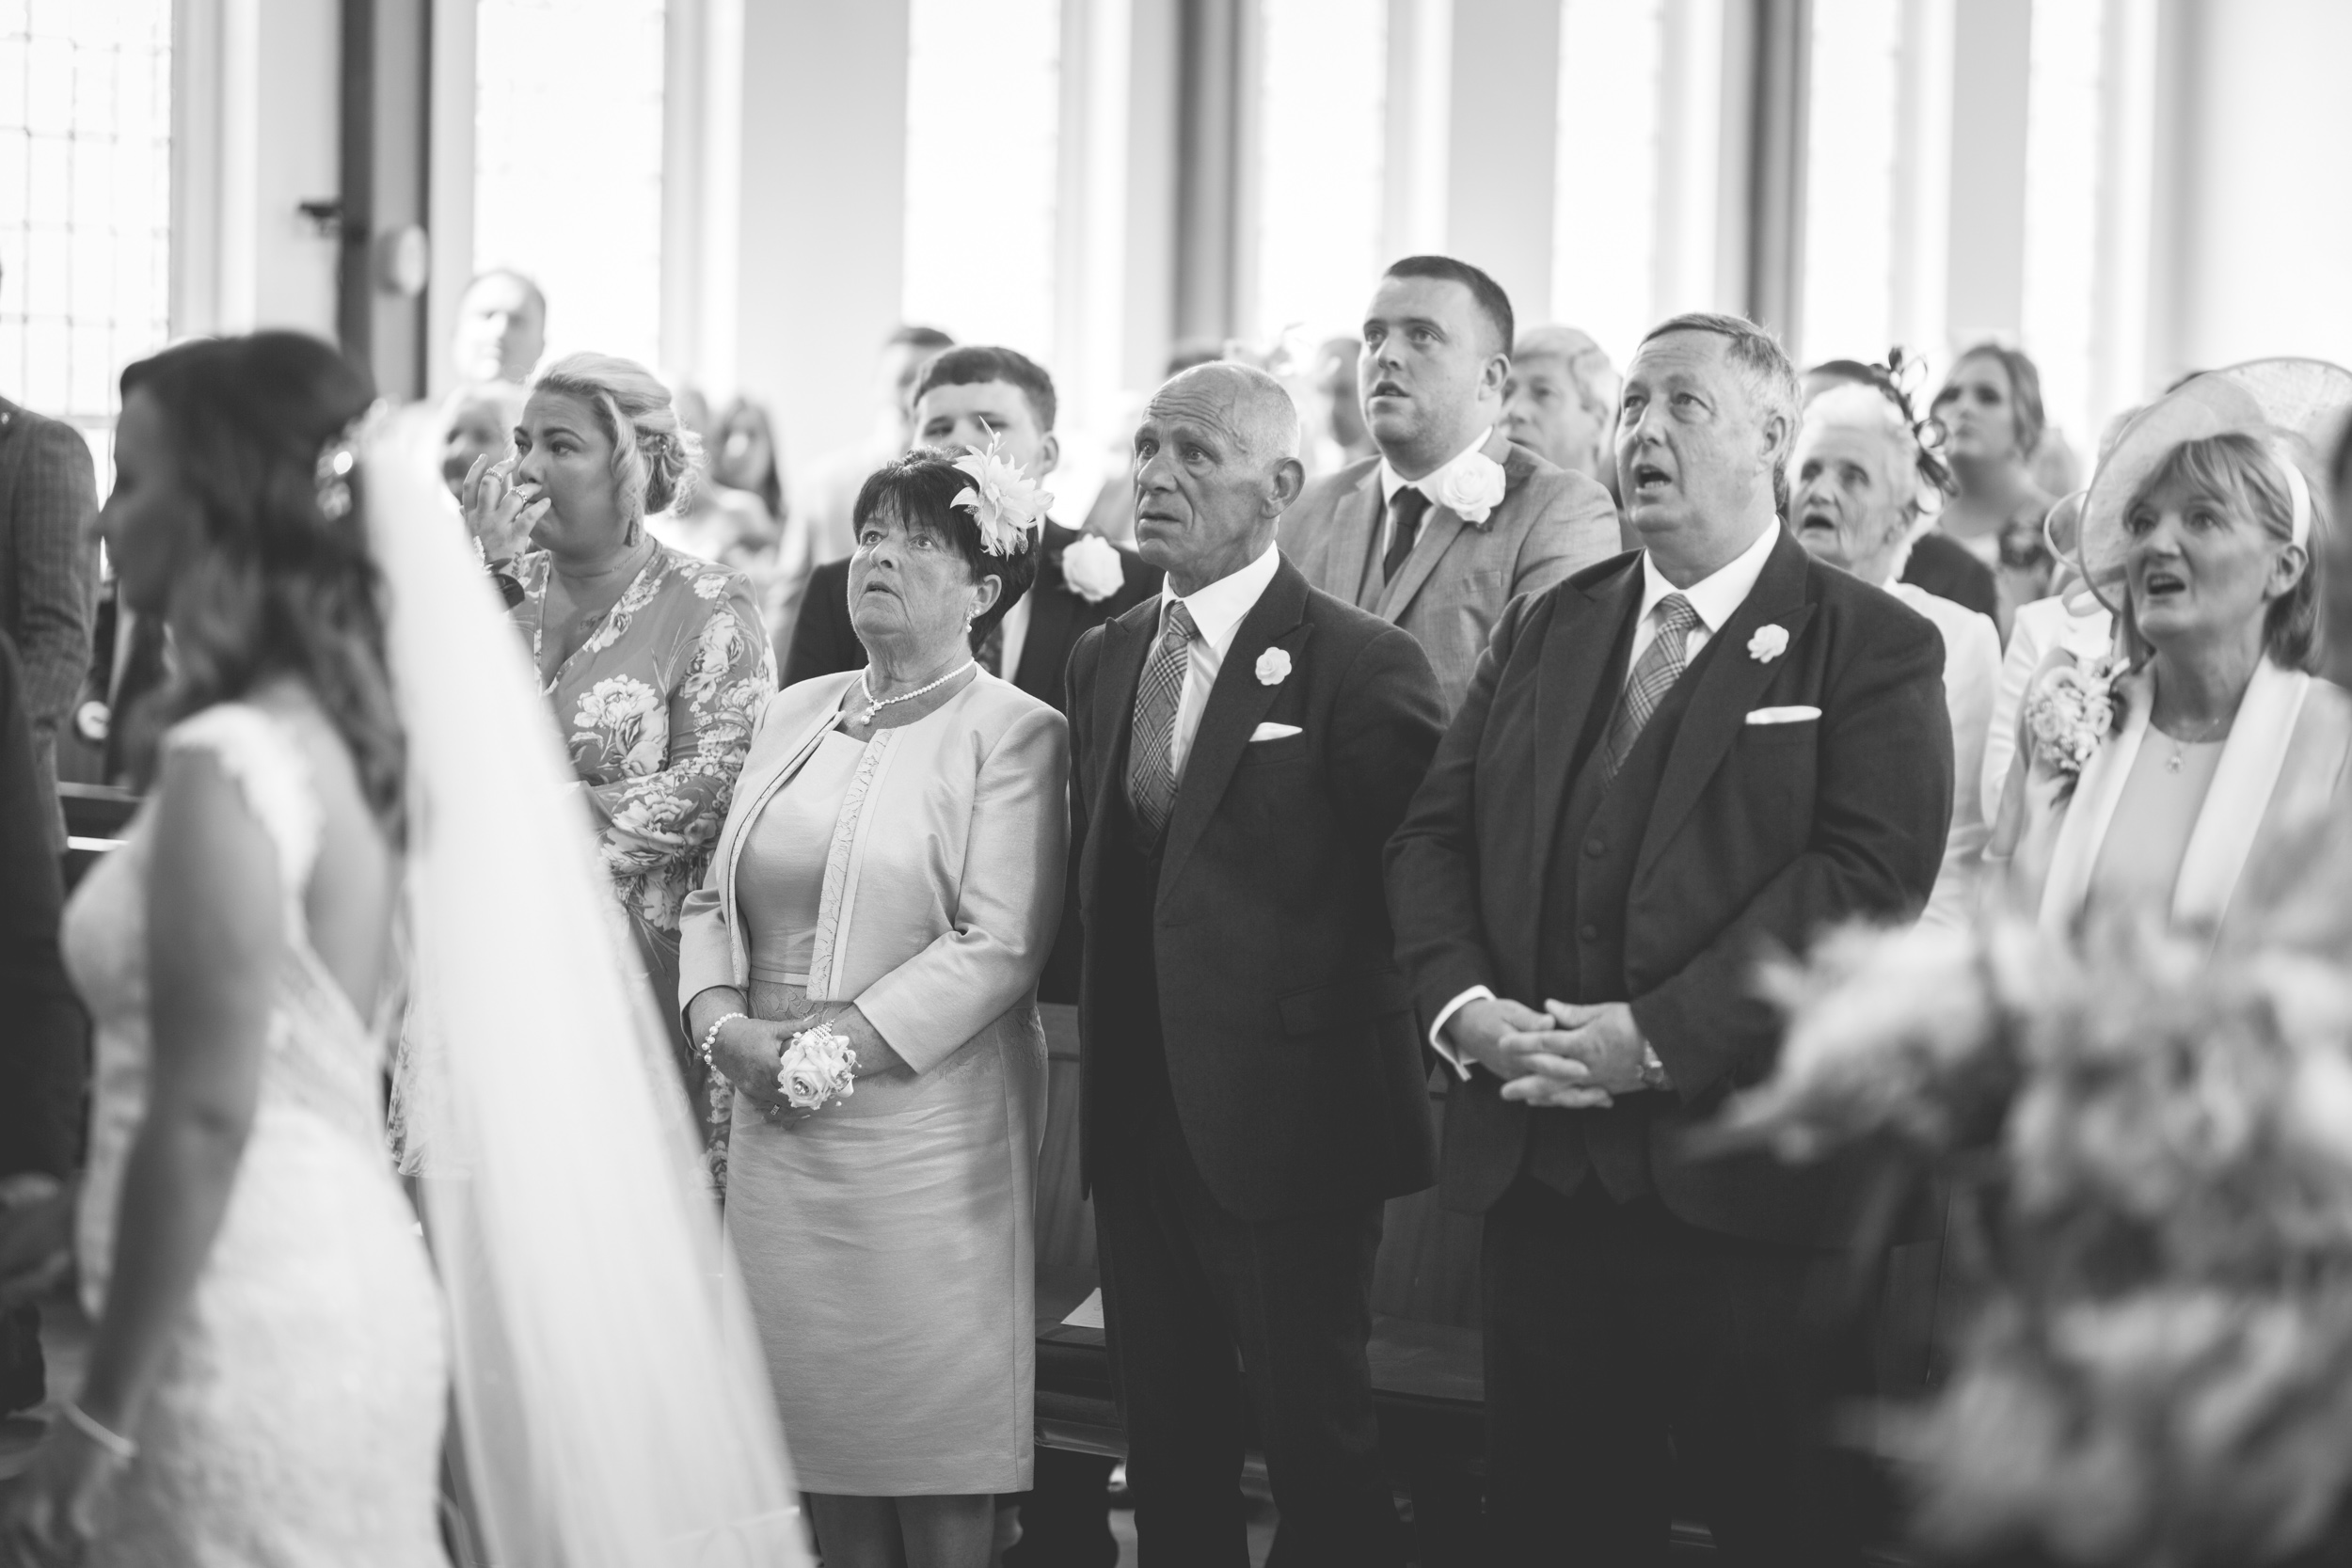 Brian McEwan | Northern Ireland Wedding Photographer | Rebecca & Michael | Ceremony-46.jpg